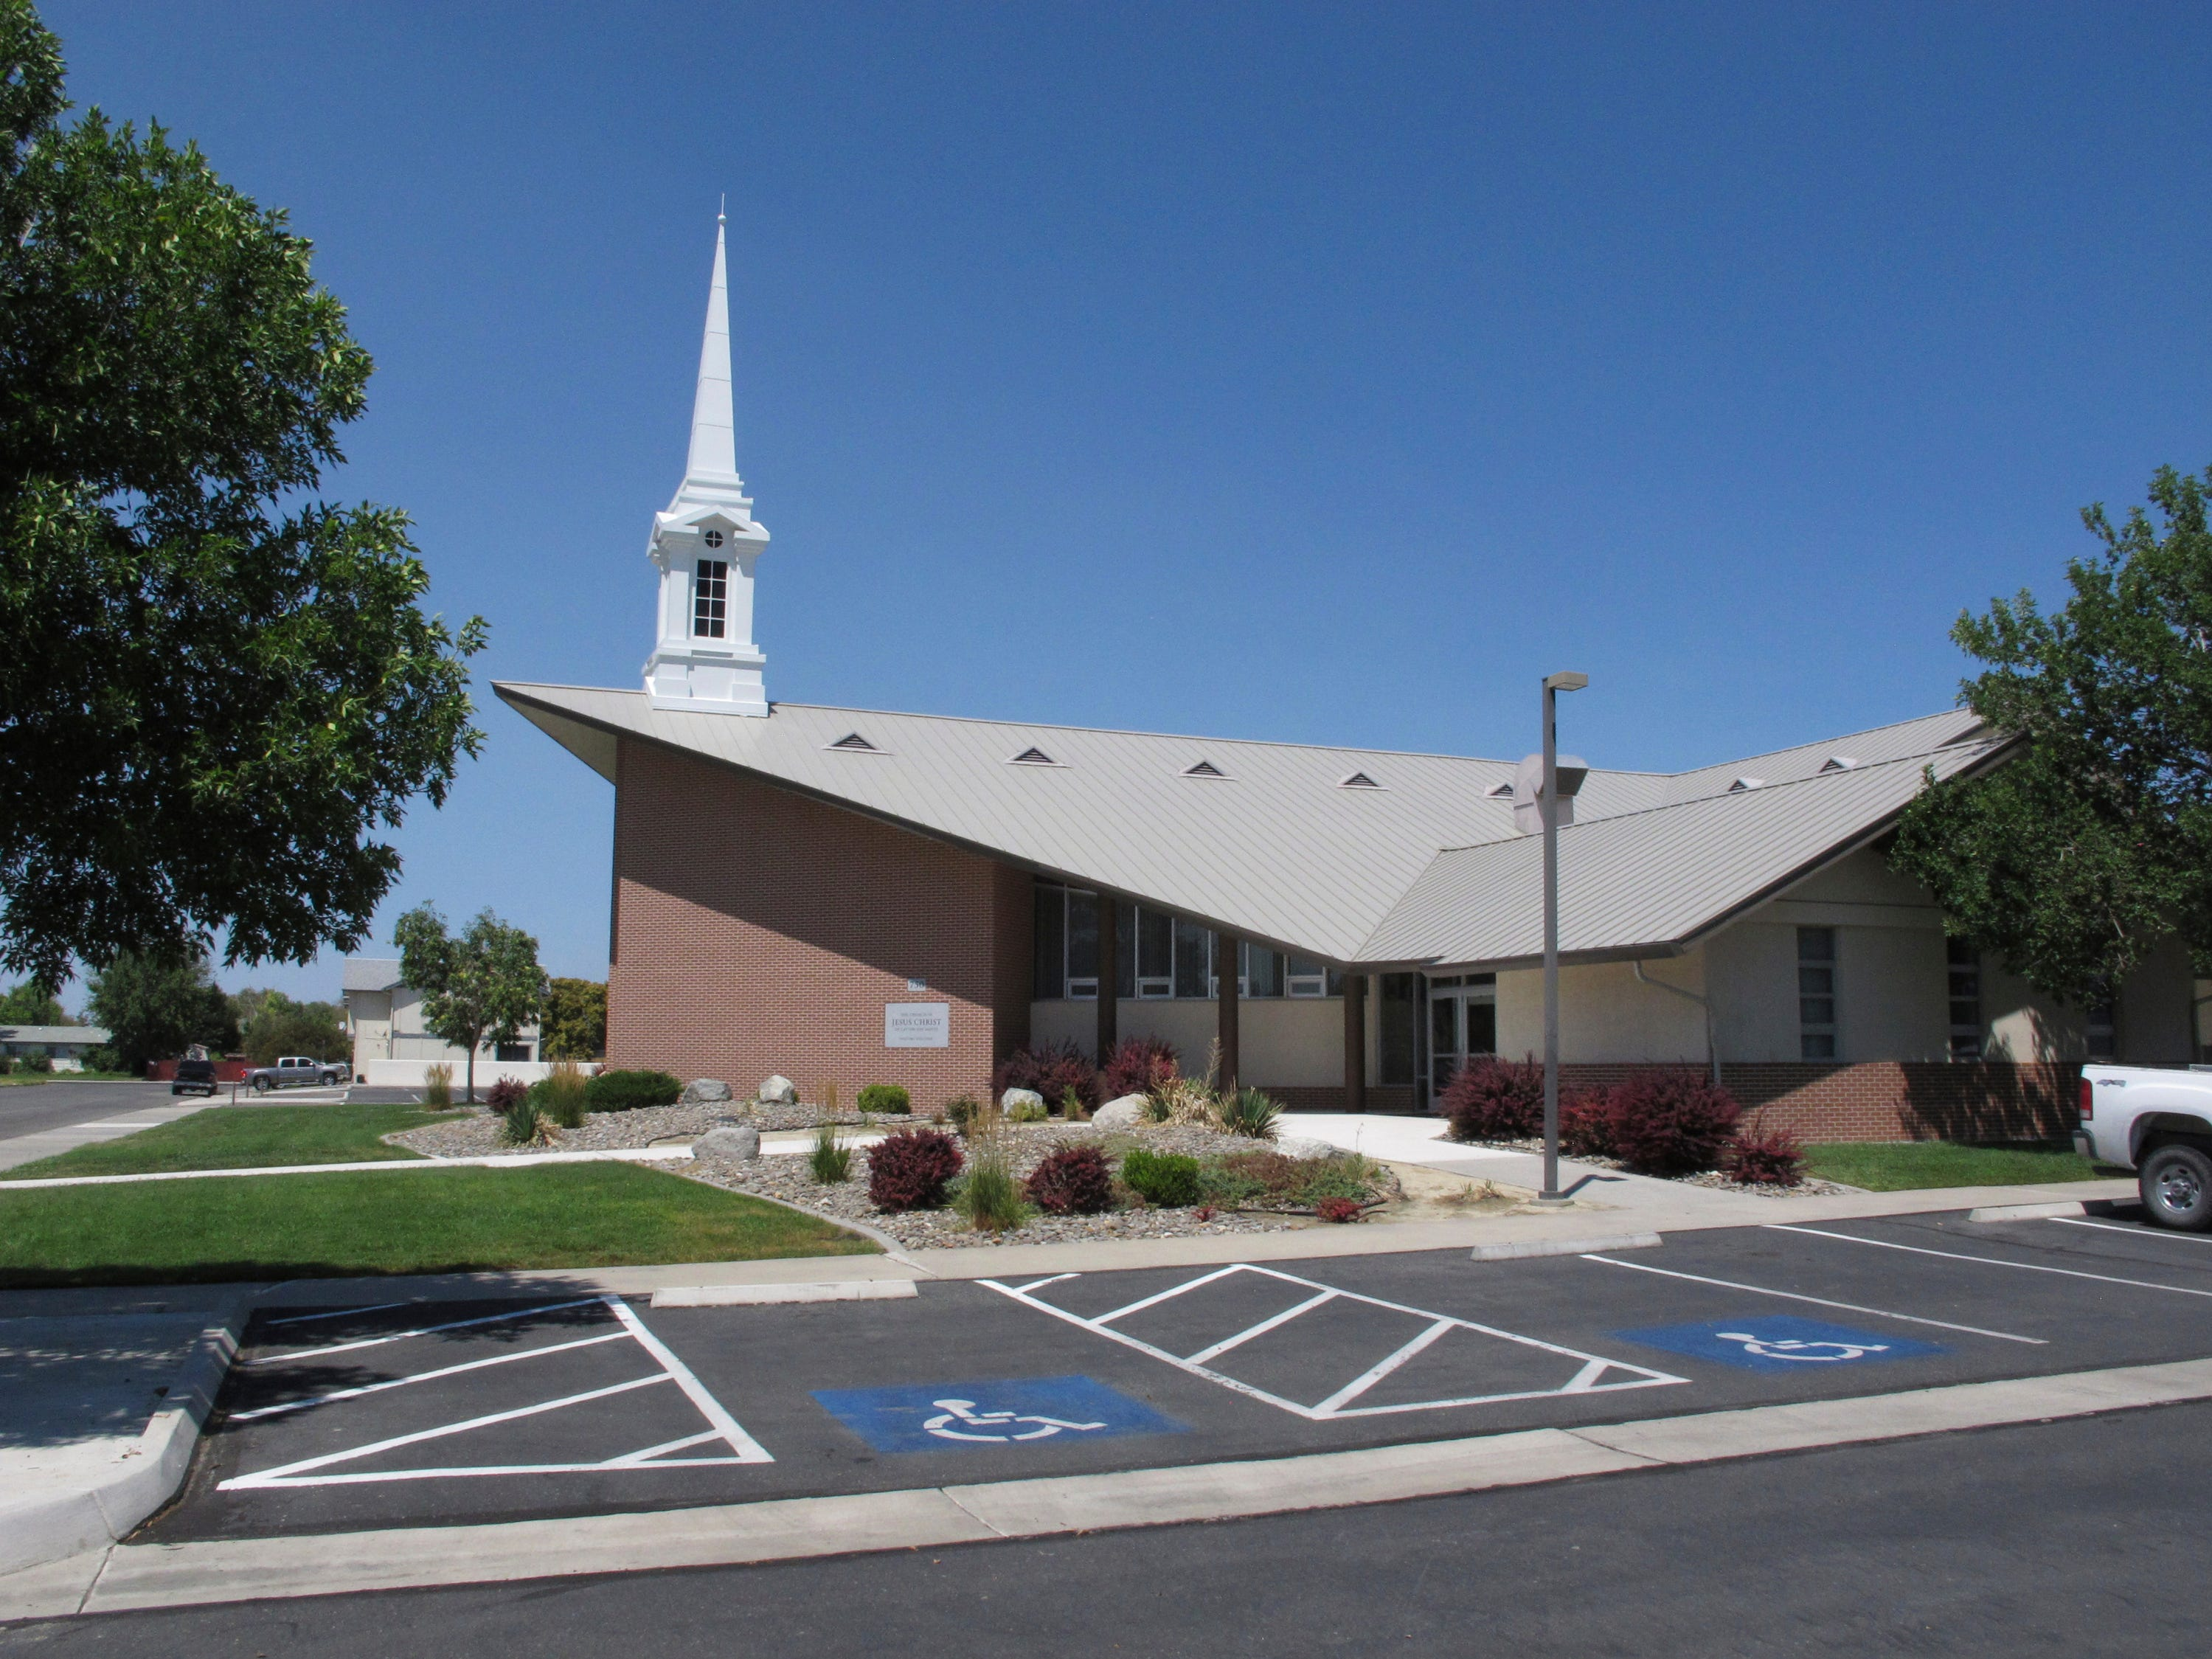 The Mormon church where a longtime rural Nevada volunteer firefighter was fatally shot during Sunday services the day before is pictured in this photo taken Monday, July 23, 2018, in Fallon, Nevada.